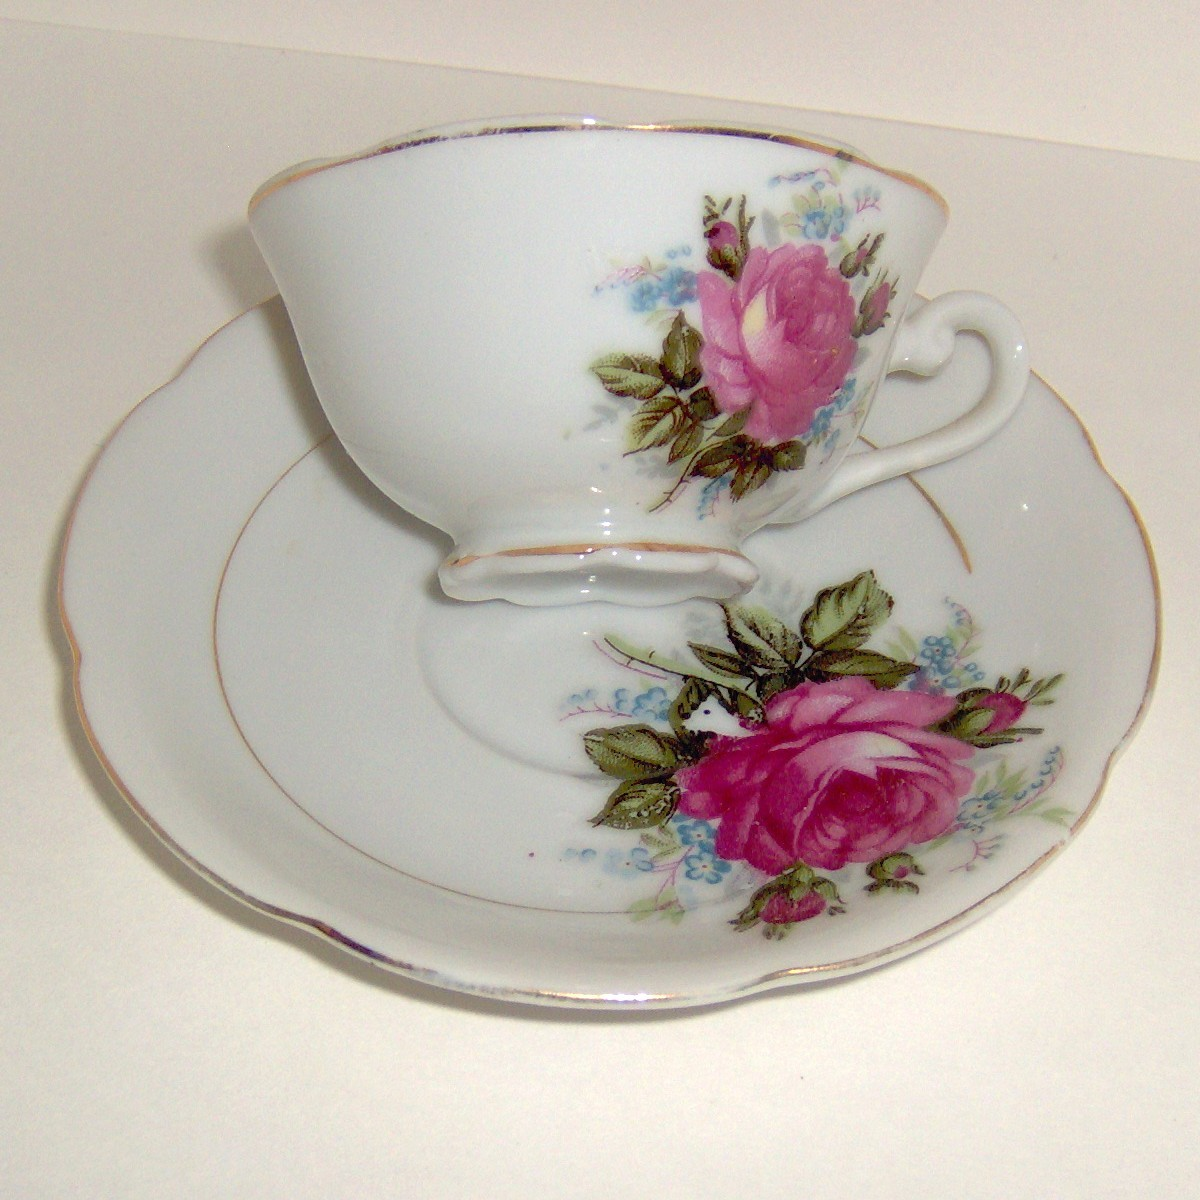 China Teacup and Saucer Set is Very Small & Delicate